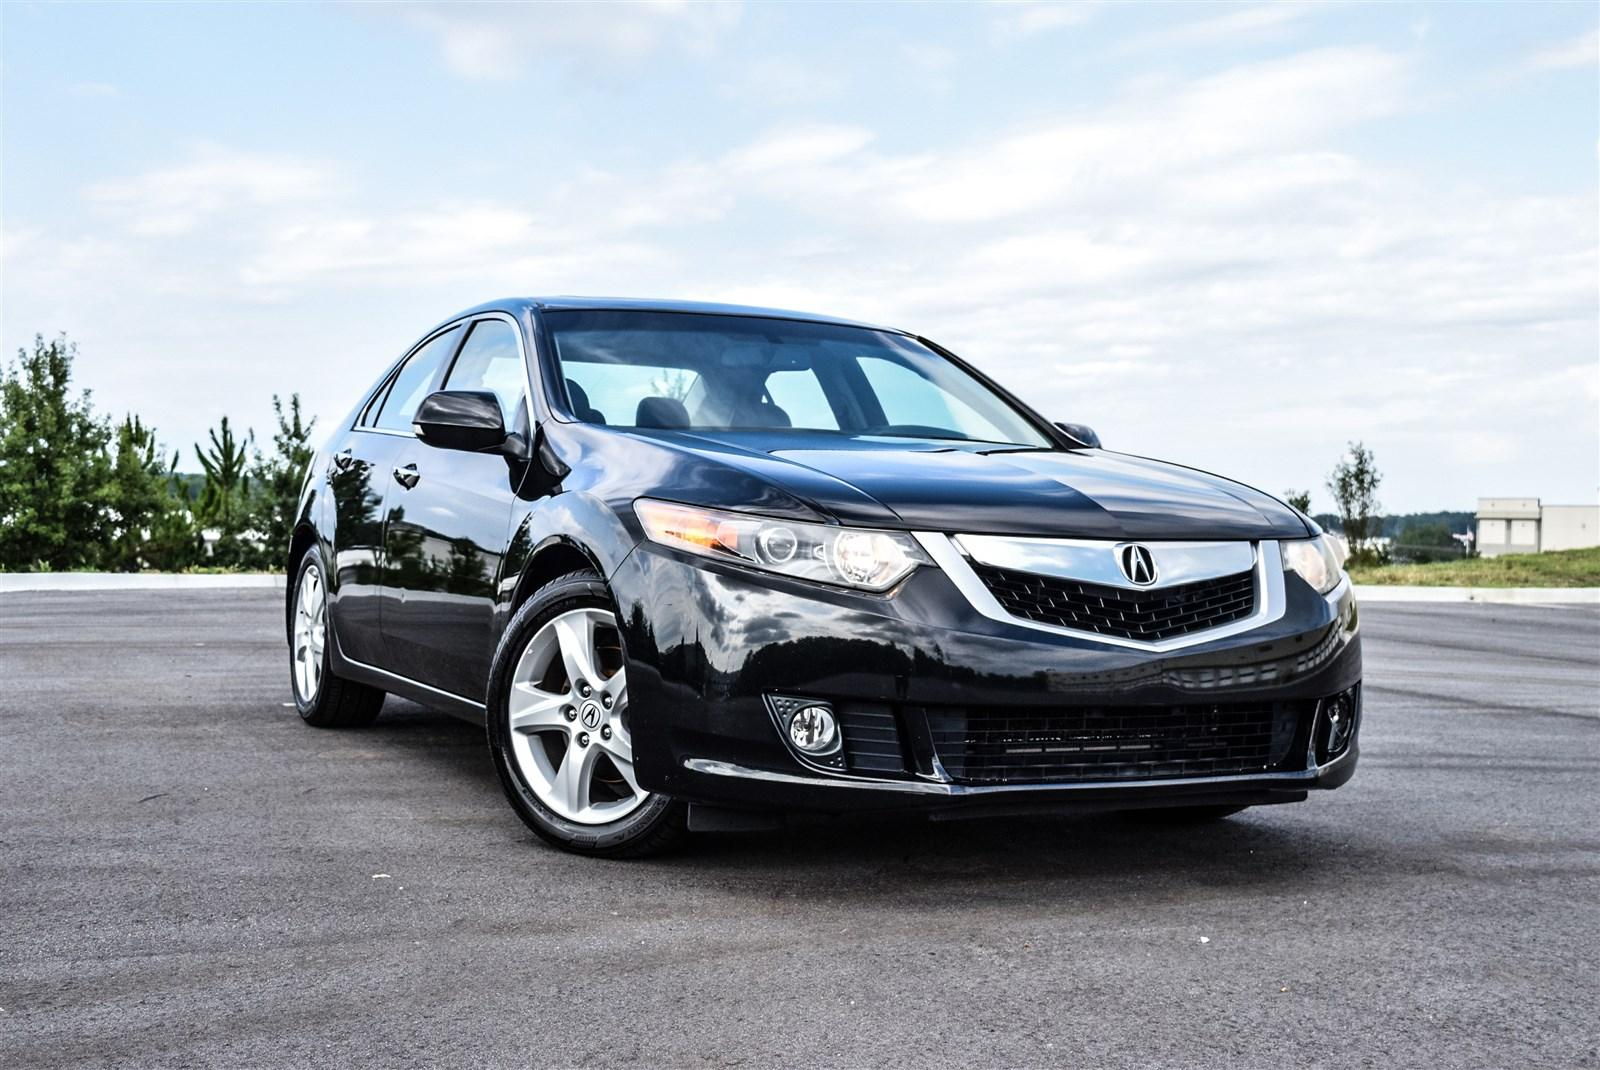 acura sale for en used pearl inventory tsx mount in and labrador newfoundland